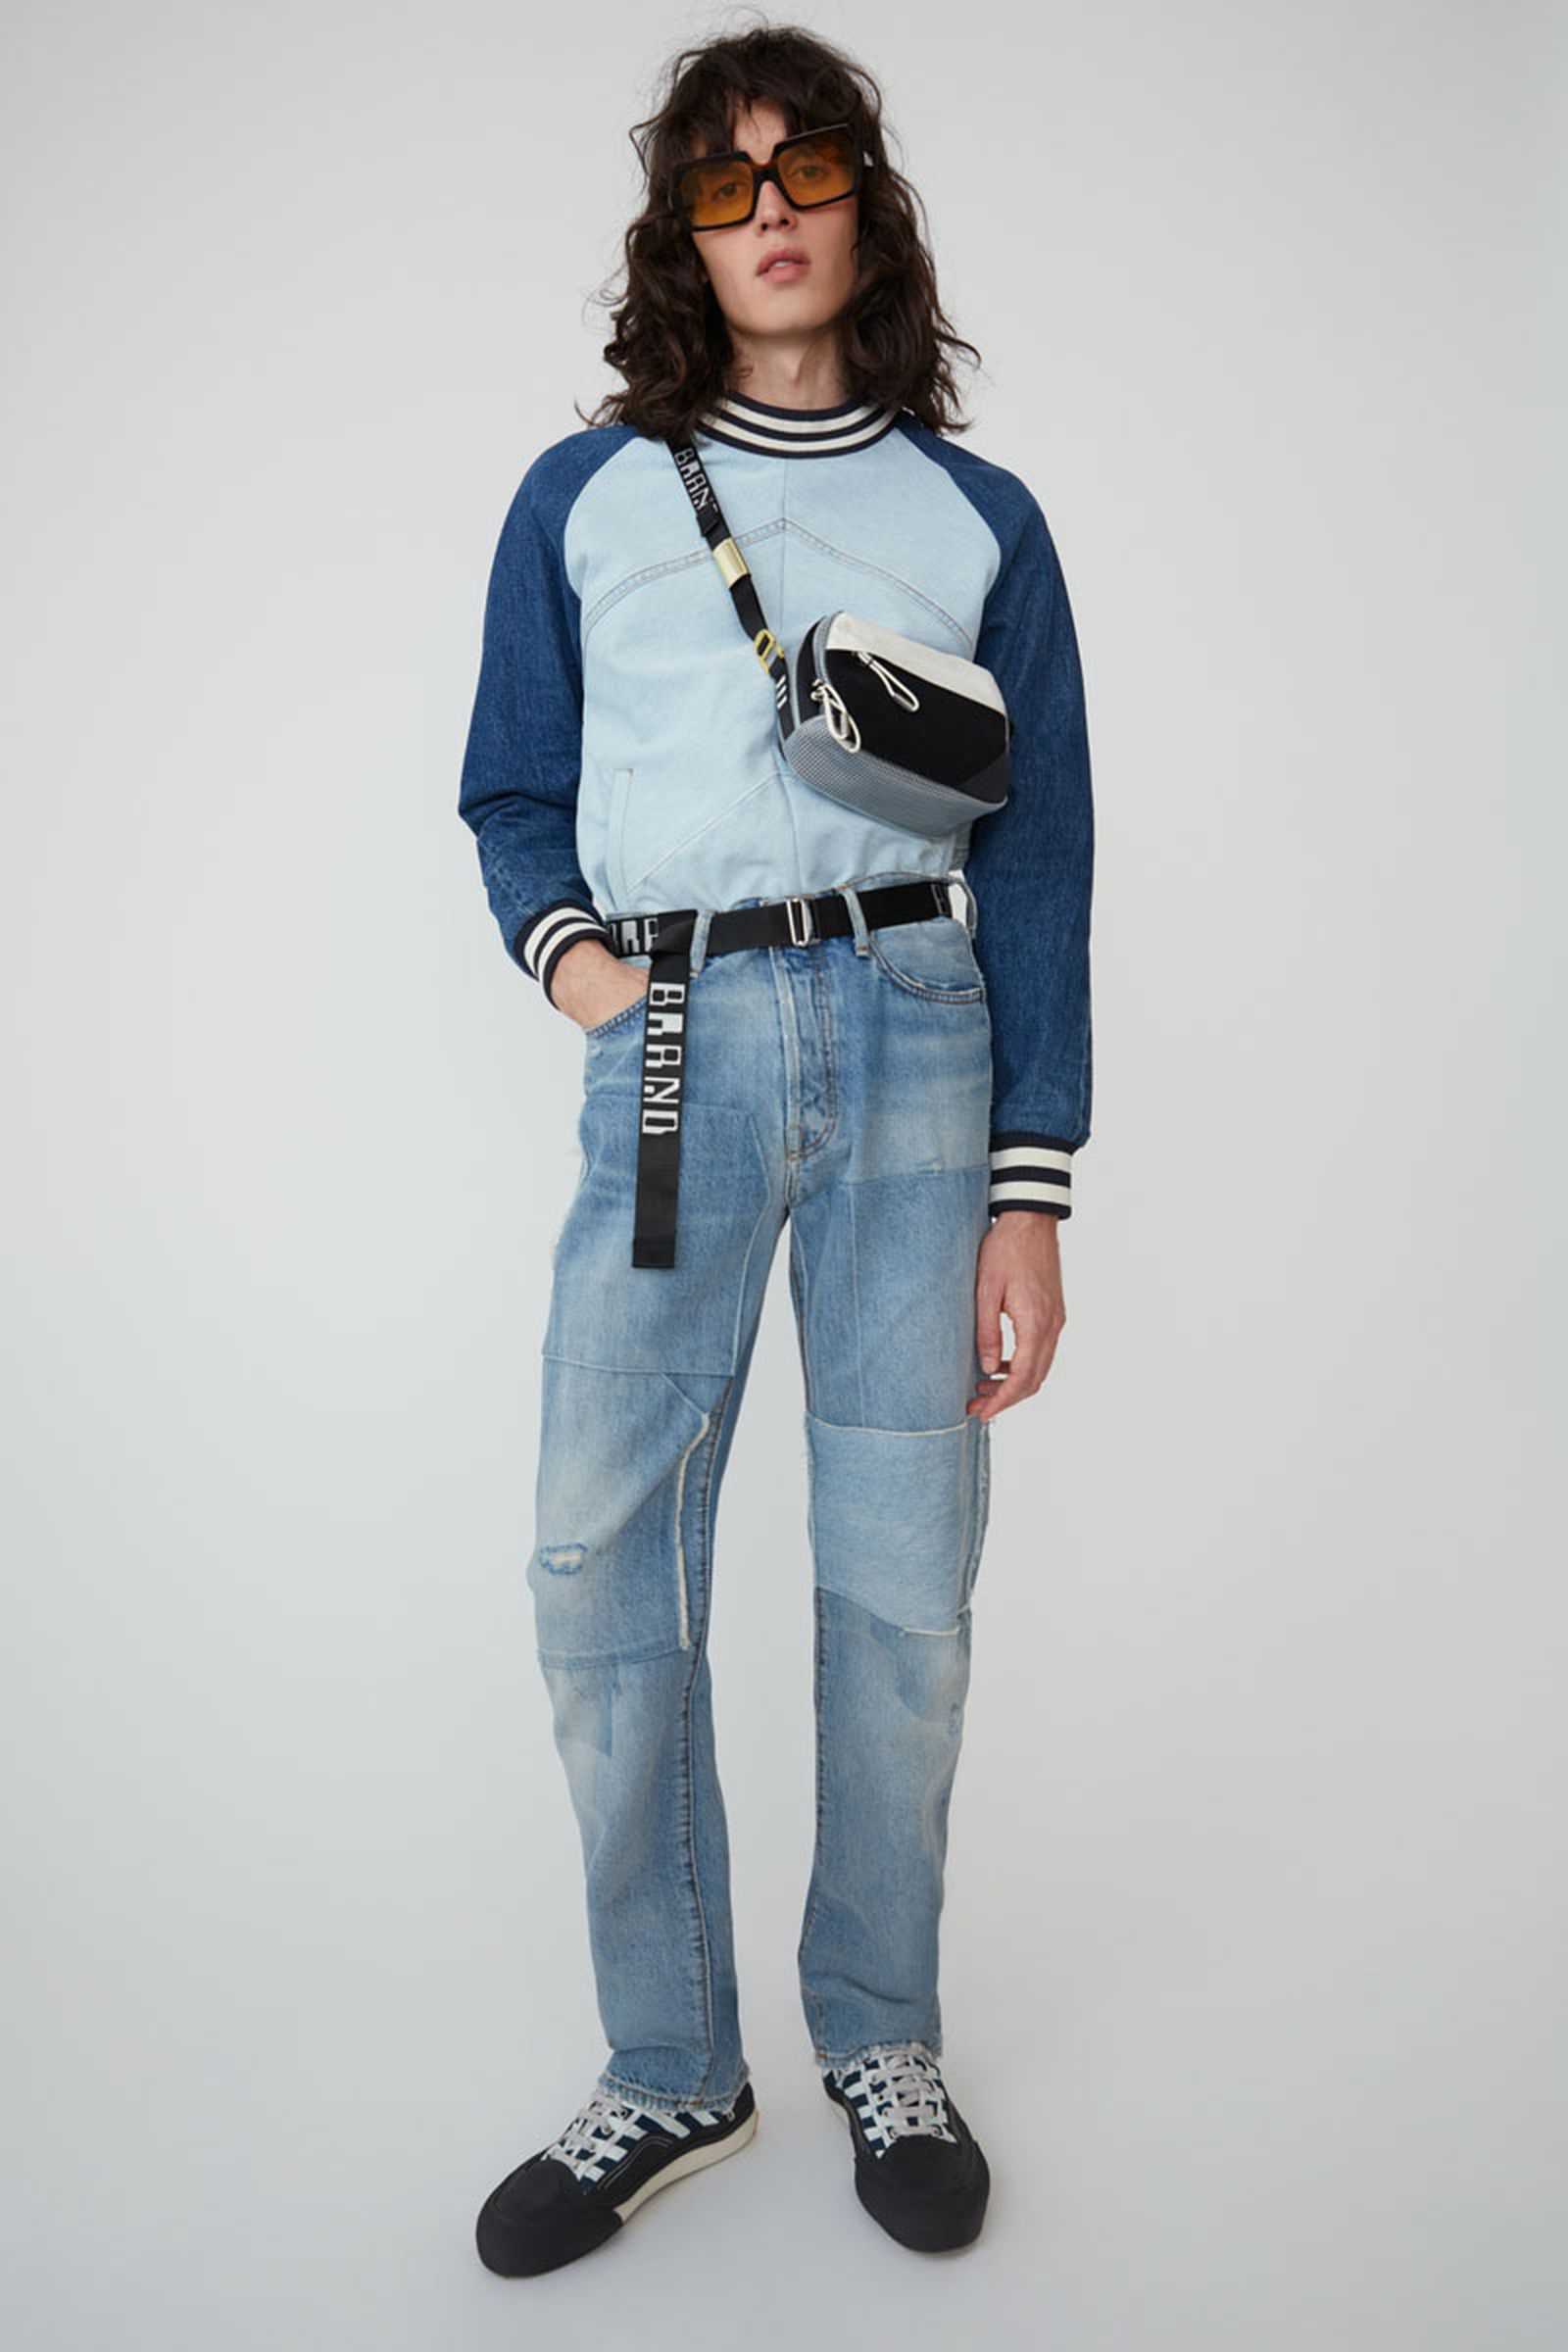 5acne studios ss19 denim collection